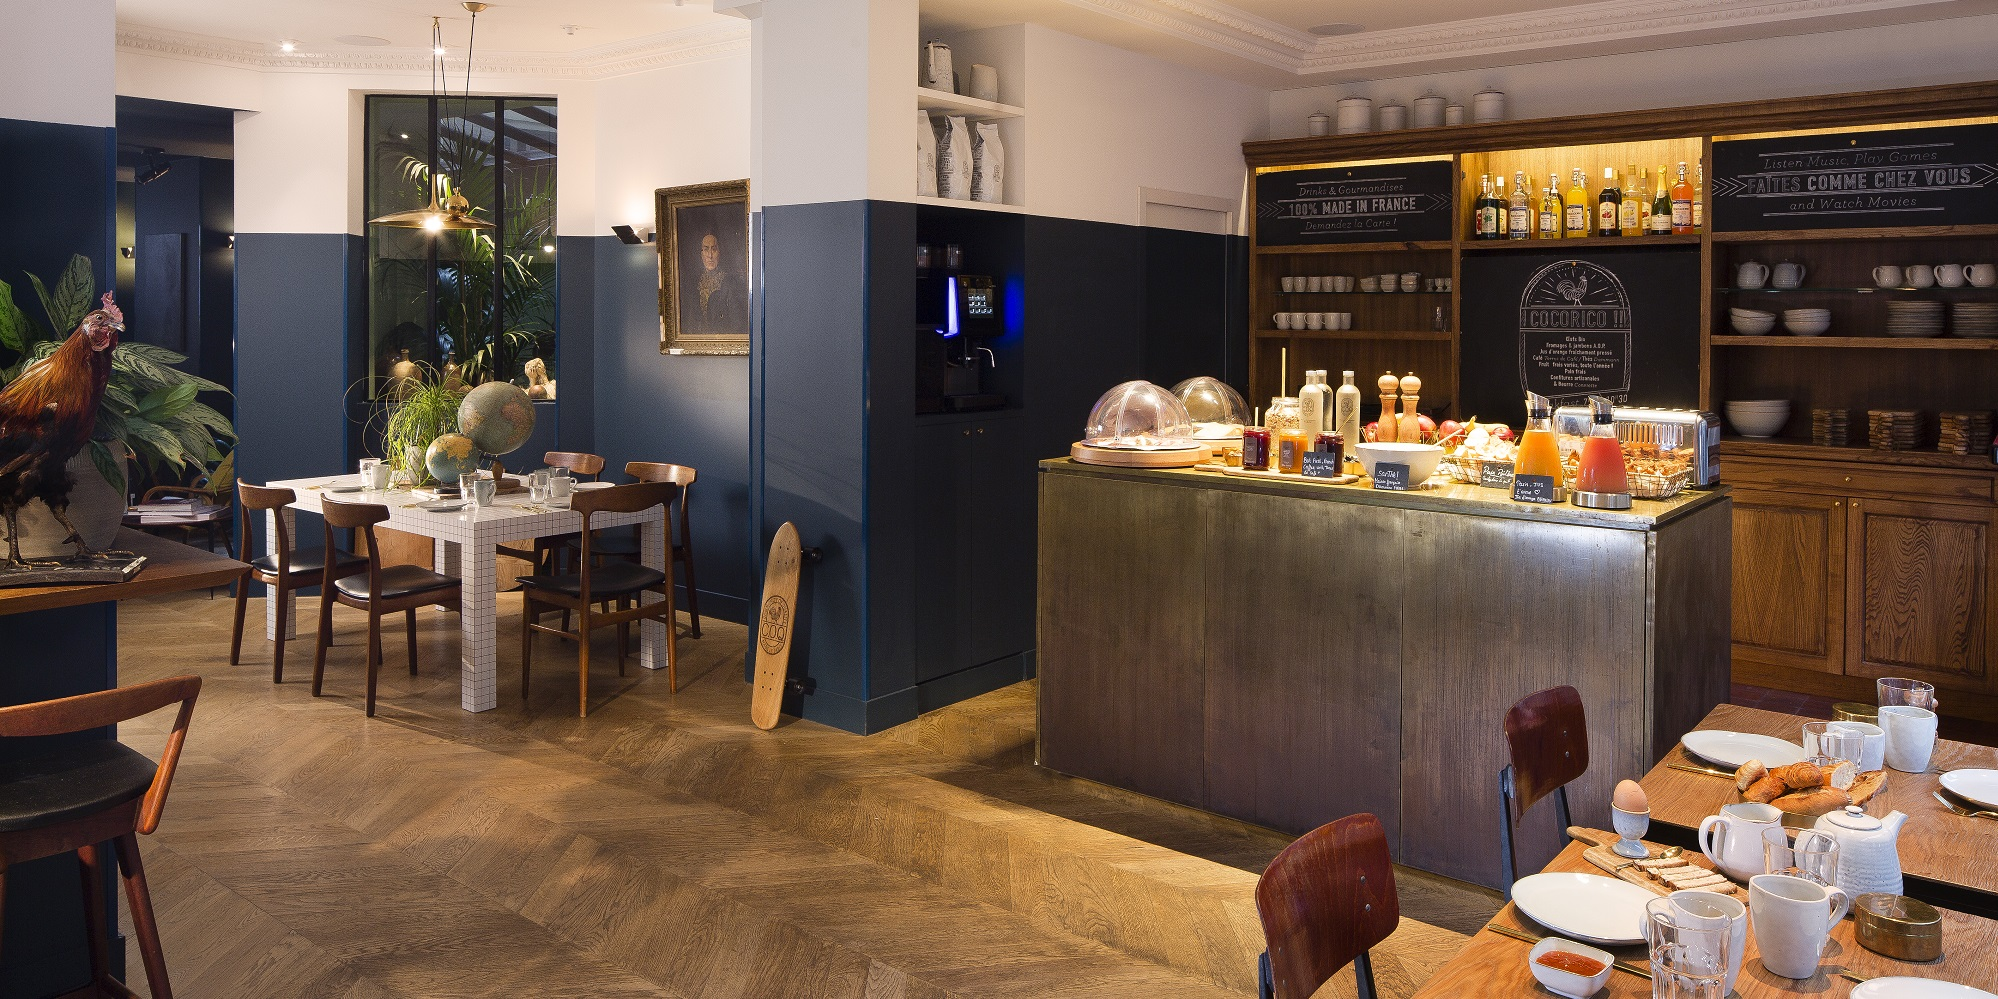 Brunch COQ Hotel Paris (75013 Paris)